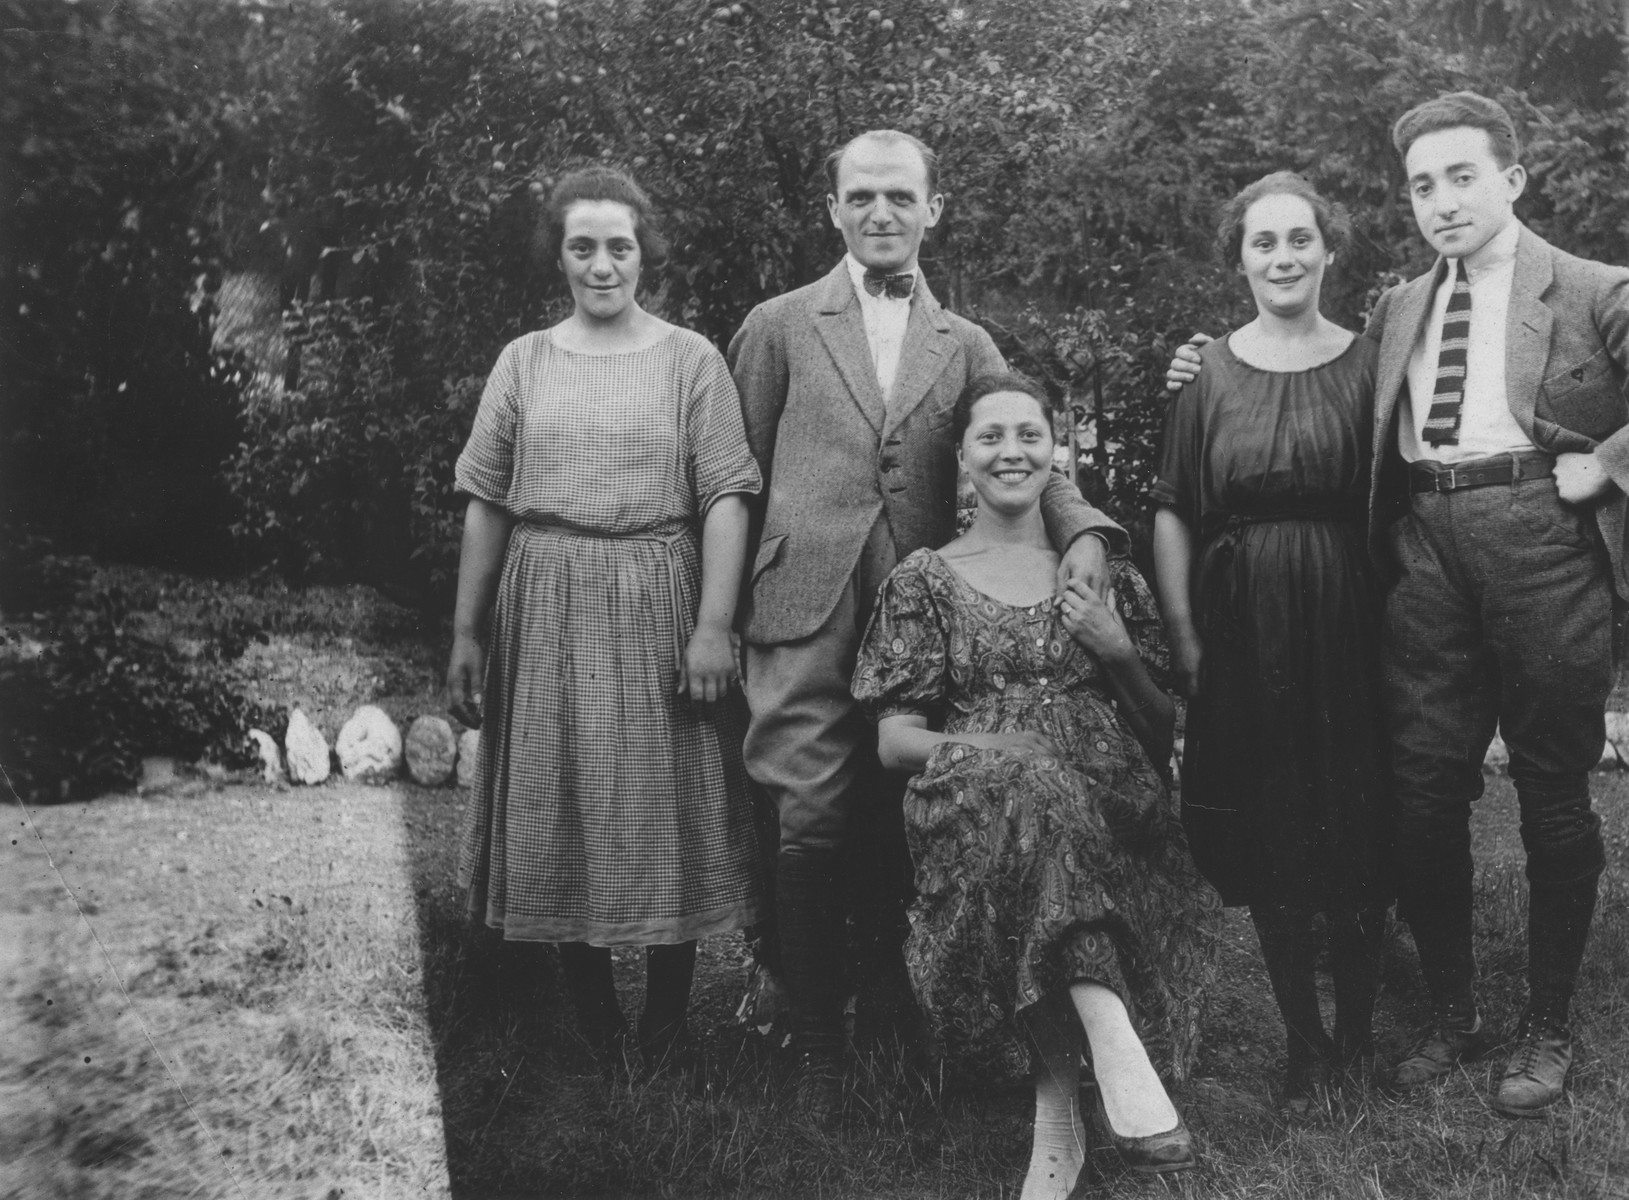 Robert and Esther Zarnicer pose with friends in Frankfurt-am-Main.  Pictured from left to right are Genya Eisenreich; Meno and Fela Gaetner; and Esther and Robert Zarnicer.